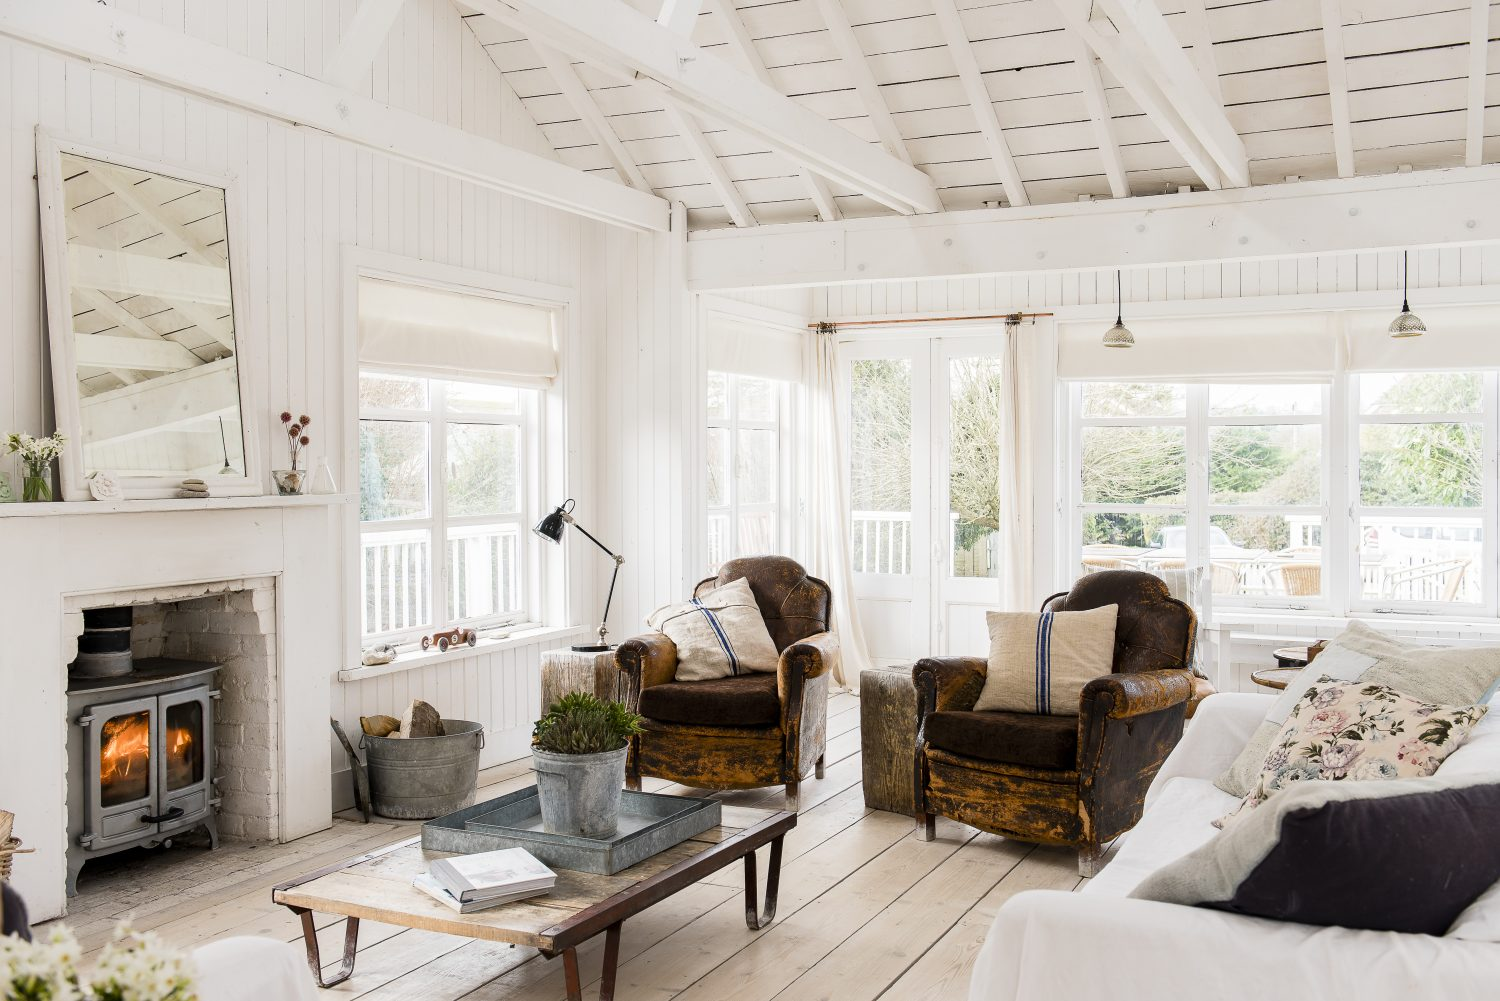 Looking out onto the deck and into the garden, with light pouring in from all sides. The gloriously patina-ed club chairs and the cushions – made from grain sacks –are all from Pale & Interesting. The flowing curtains – the essence of a summery beach house feel – are antique linen sheets